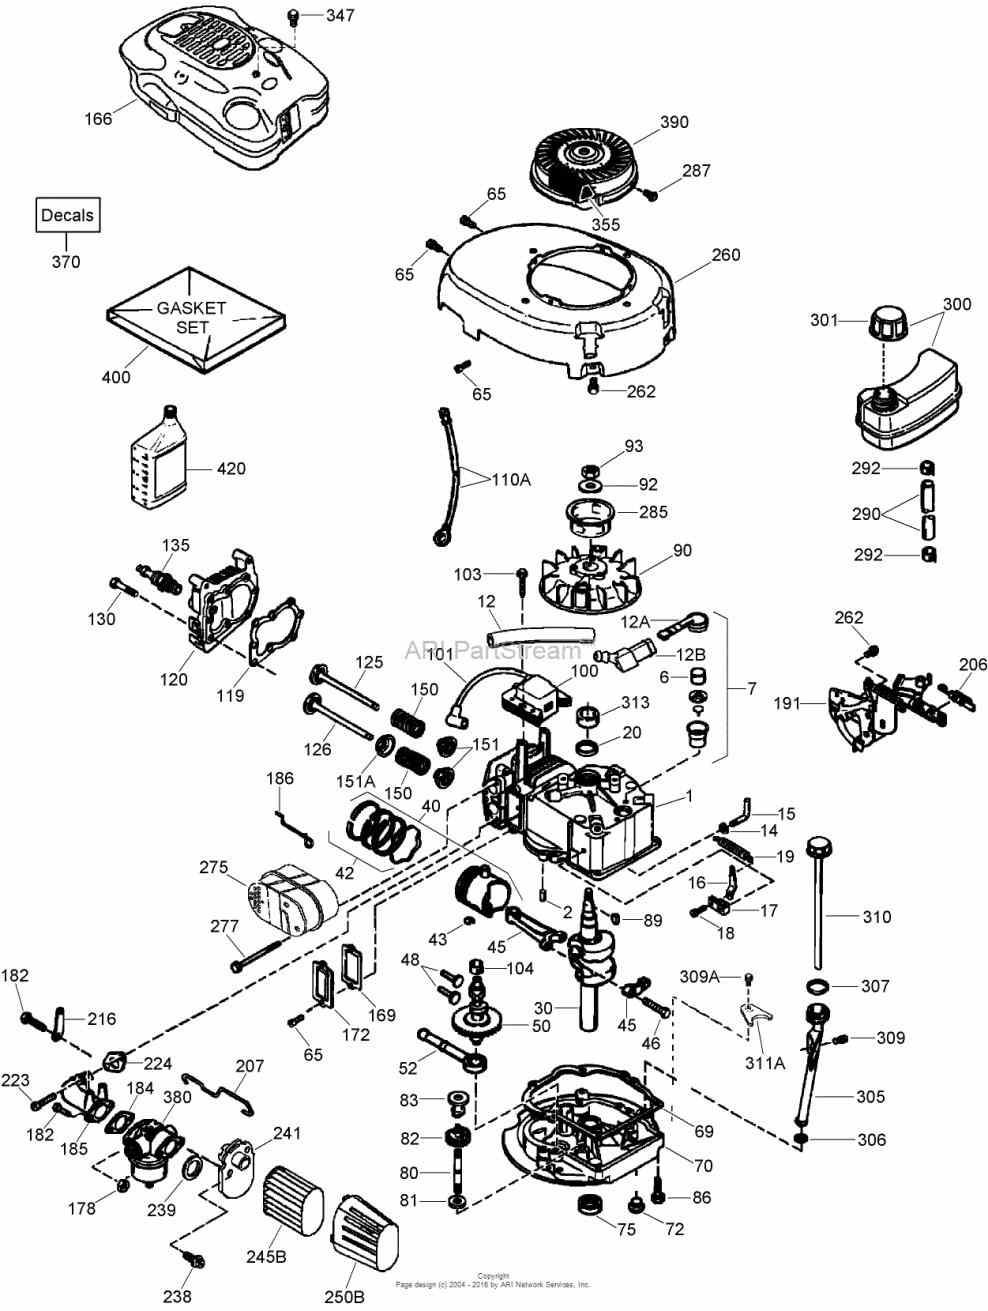 Lawn Mowers. Lawn Mower Motor Diagram: Zero Turn Drive Belt throughout John Deere Riding Lawn Mower Parts Diagram